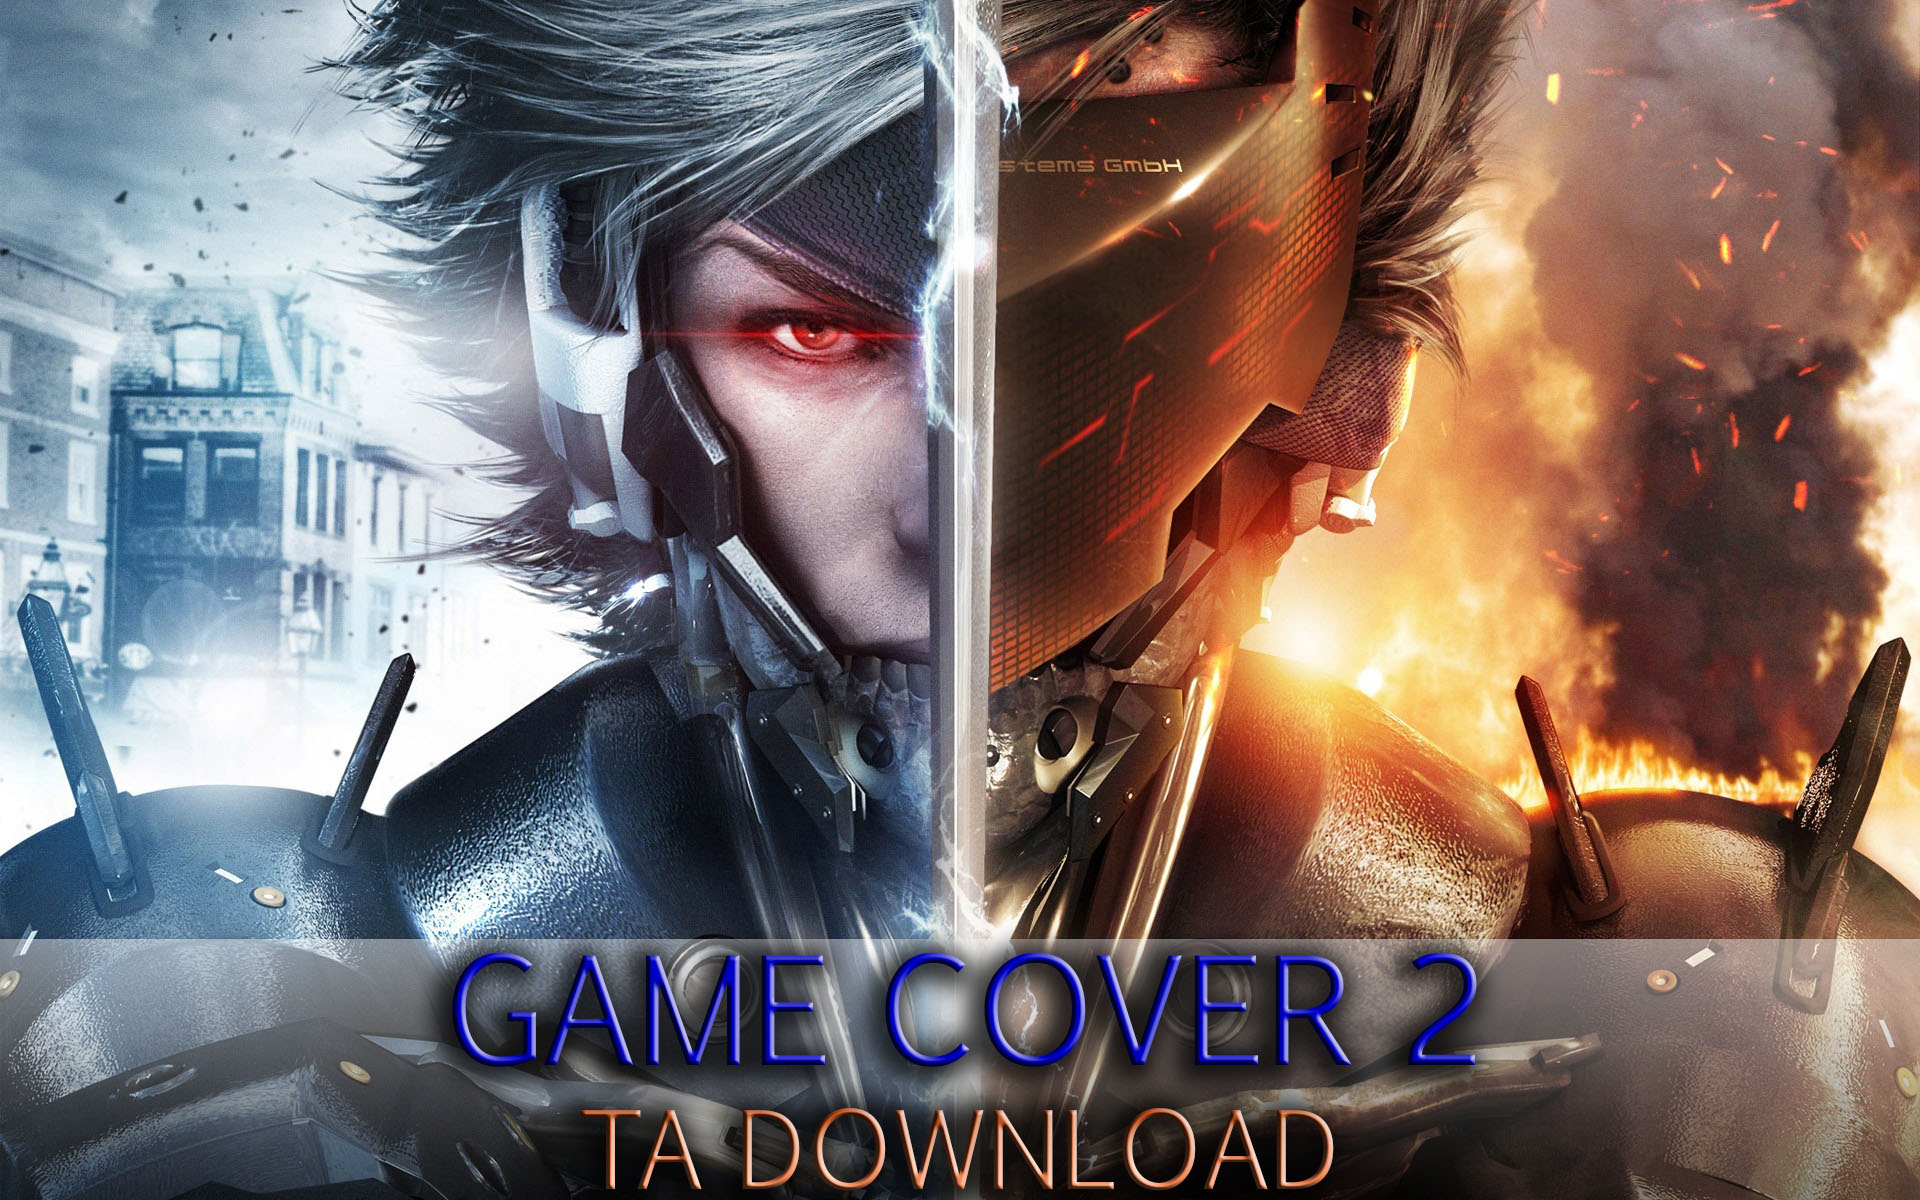 Game Cover 2